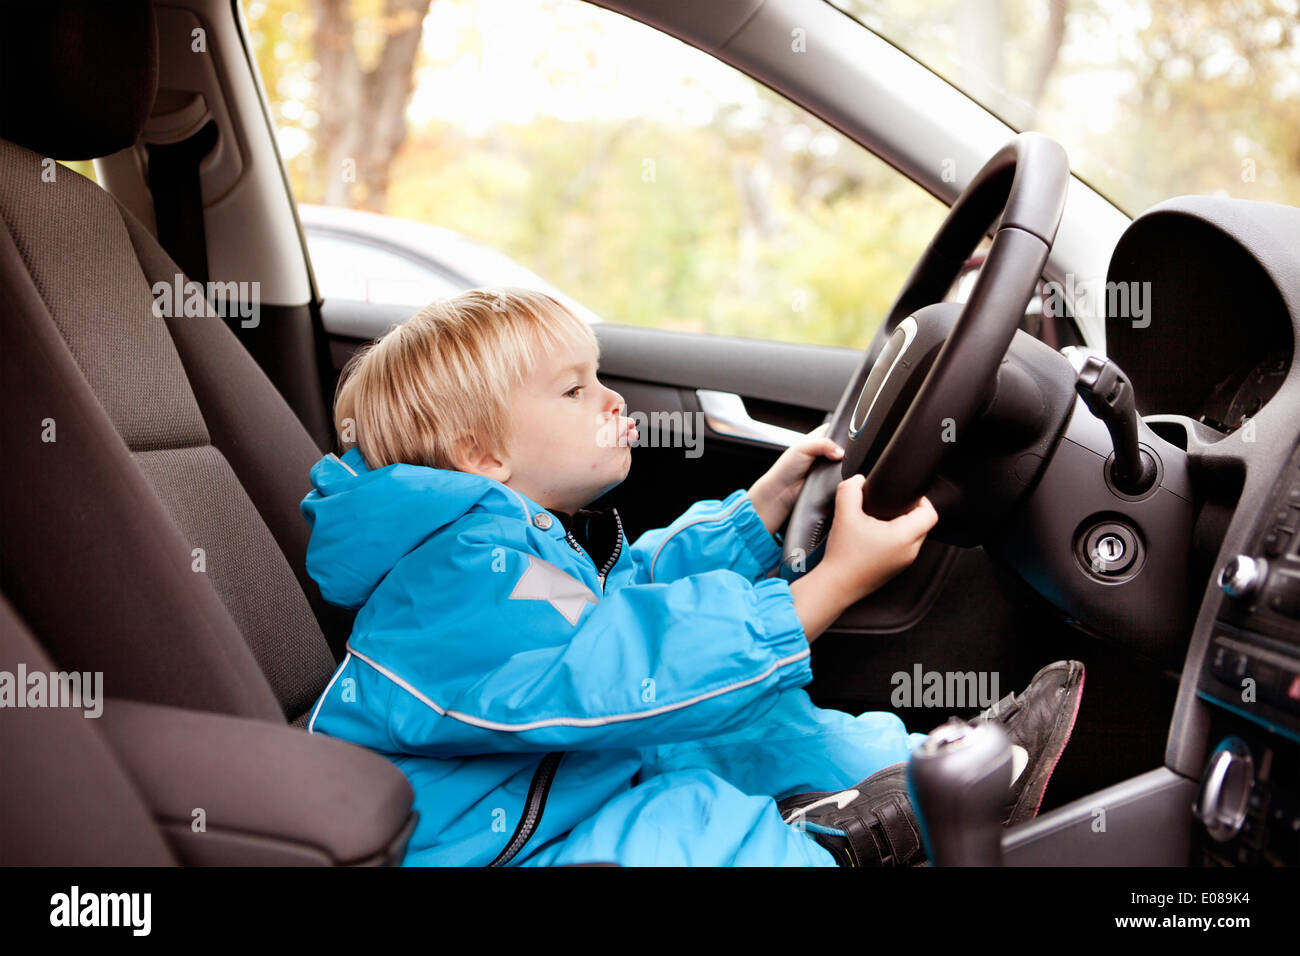 full length side view of boy holding car 39 s steering wheel stock photo royalty free image. Black Bedroom Furniture Sets. Home Design Ideas